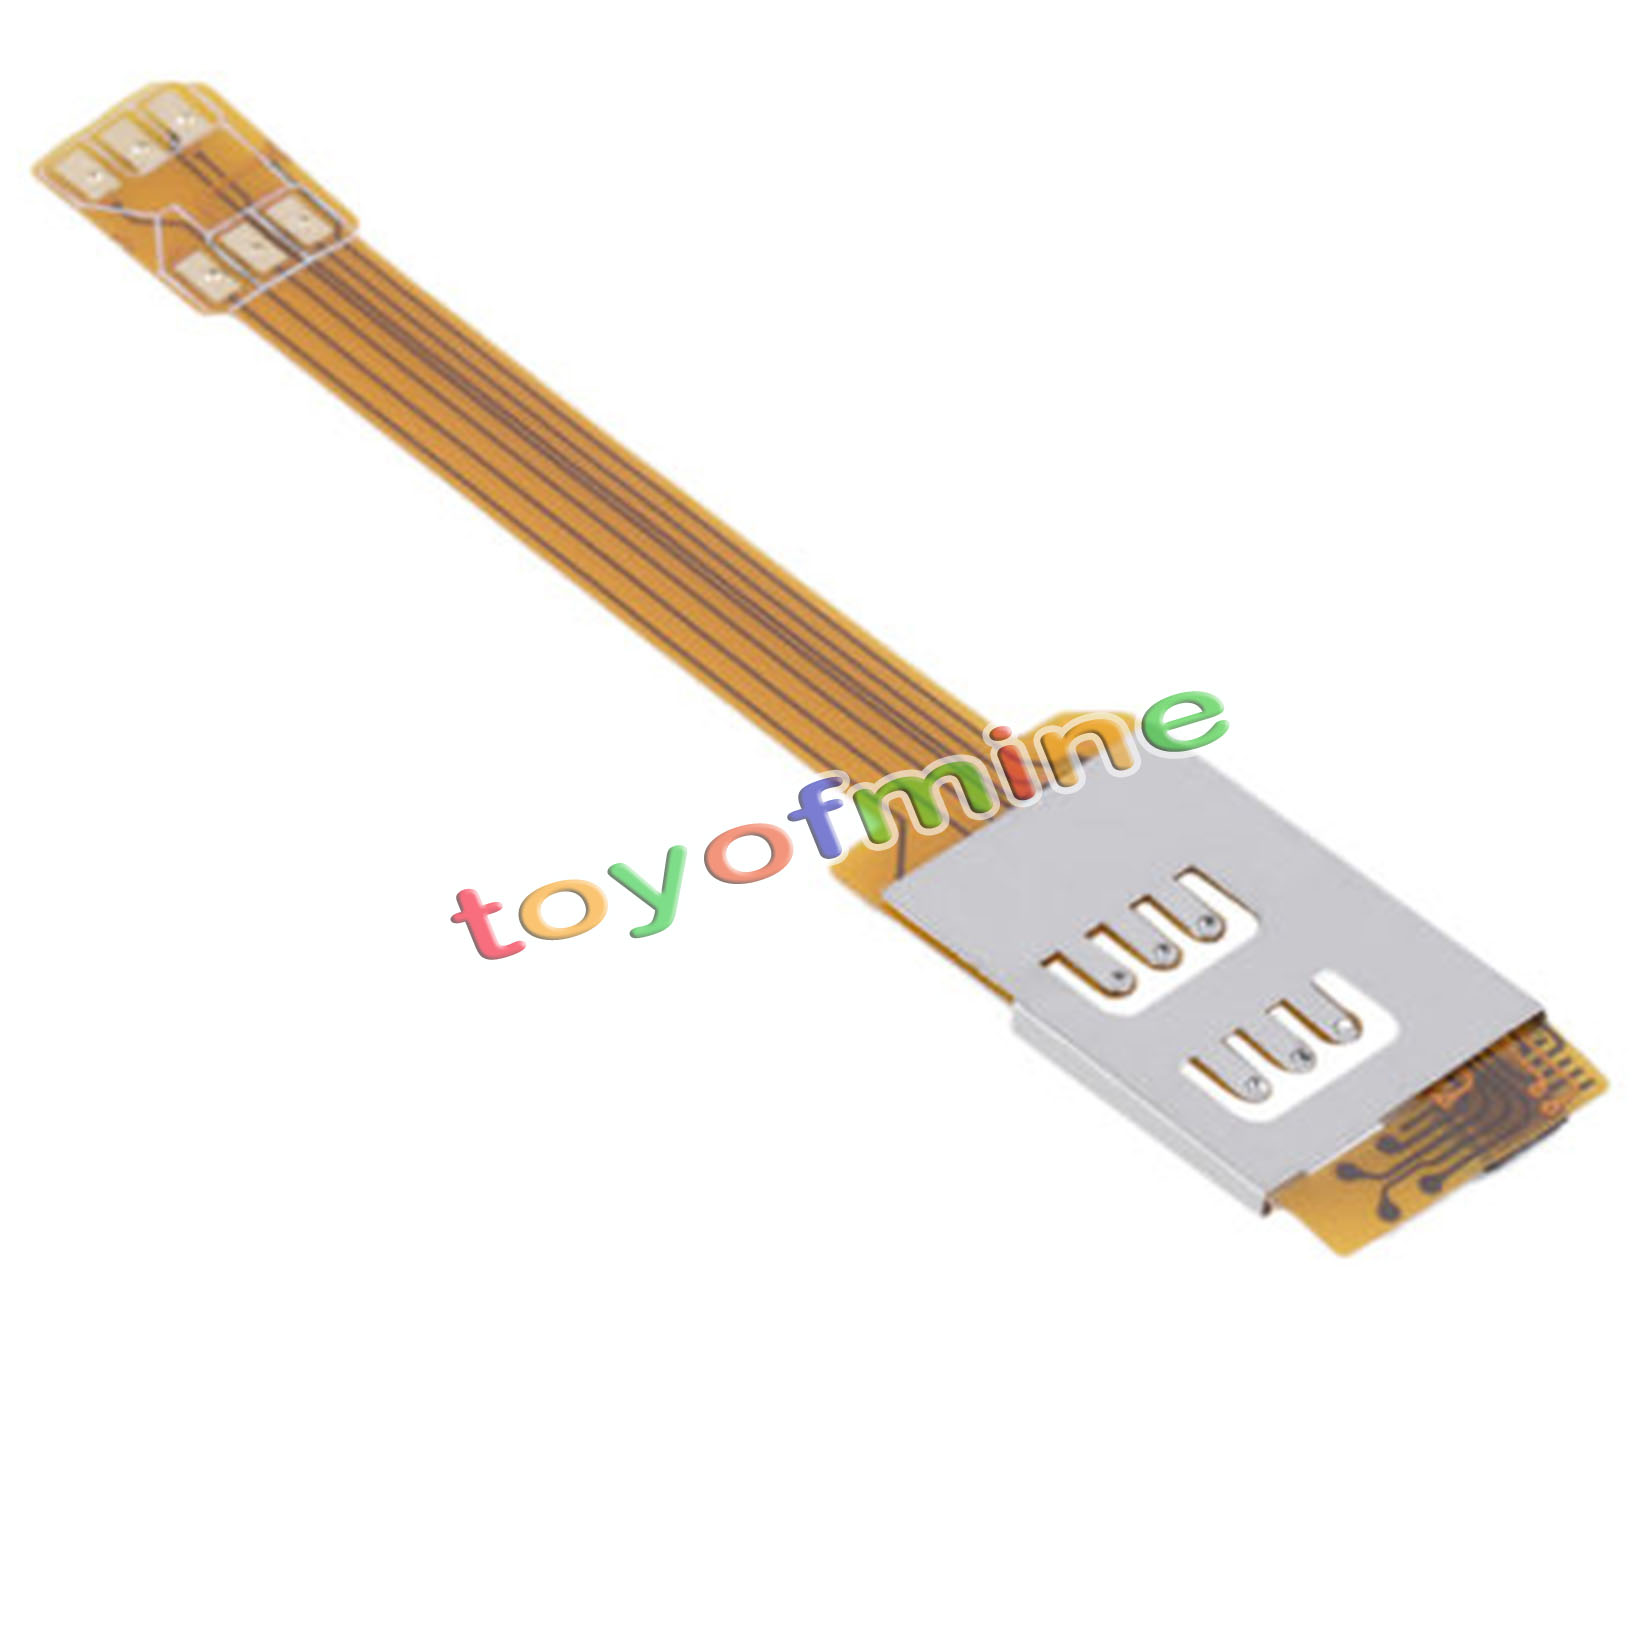 dual sim card adapter single standby flex cable ribbon for. Black Bedroom Furniture Sets. Home Design Ideas